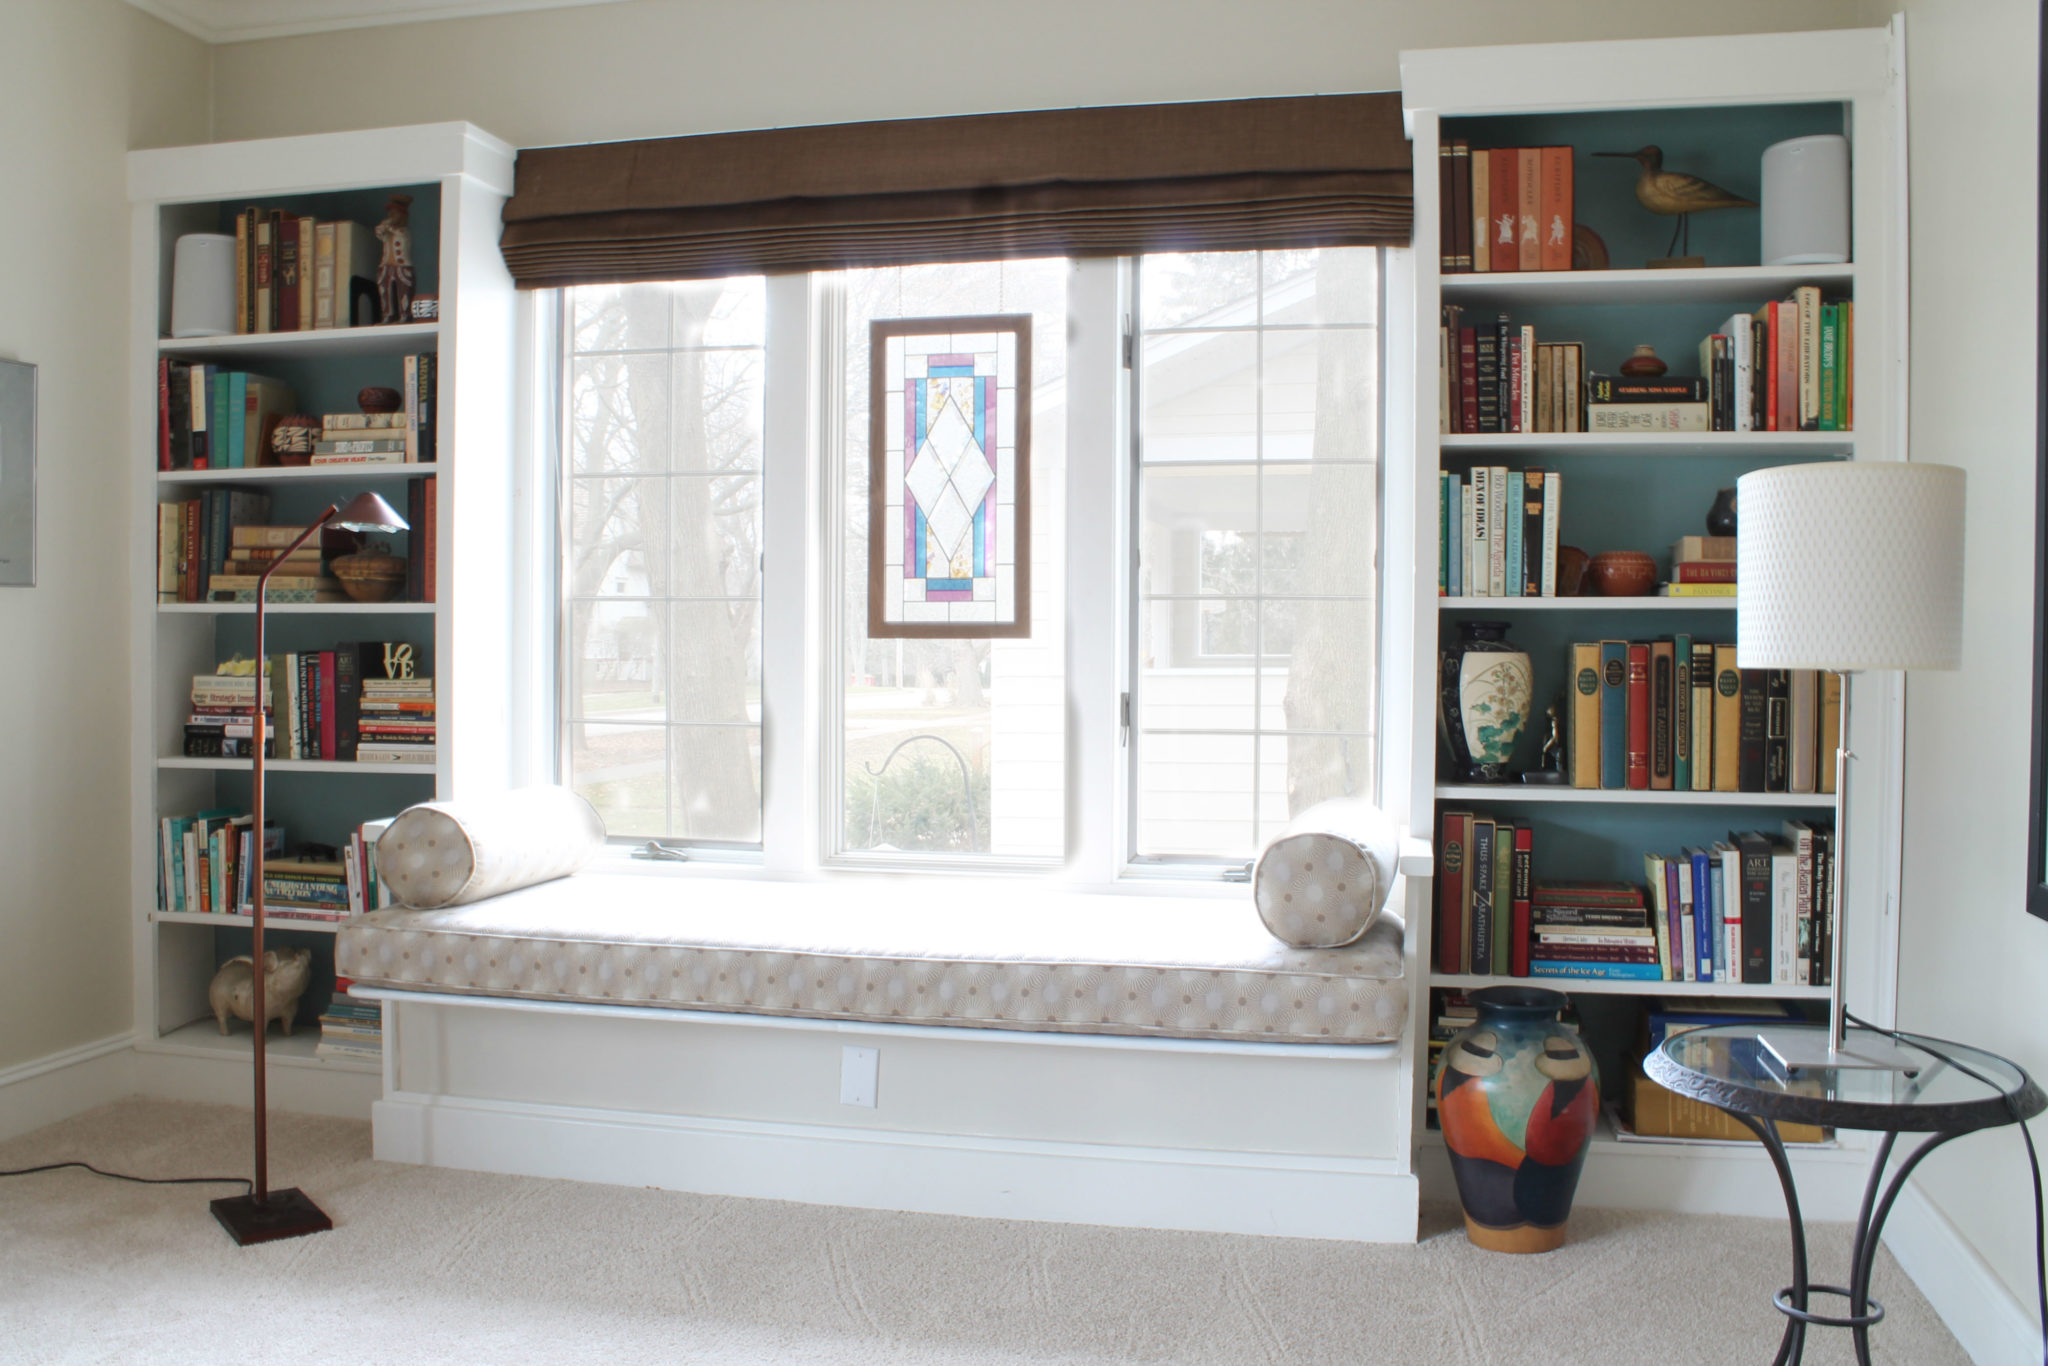 Window Seating minimalist window seat: a simple element with grand value